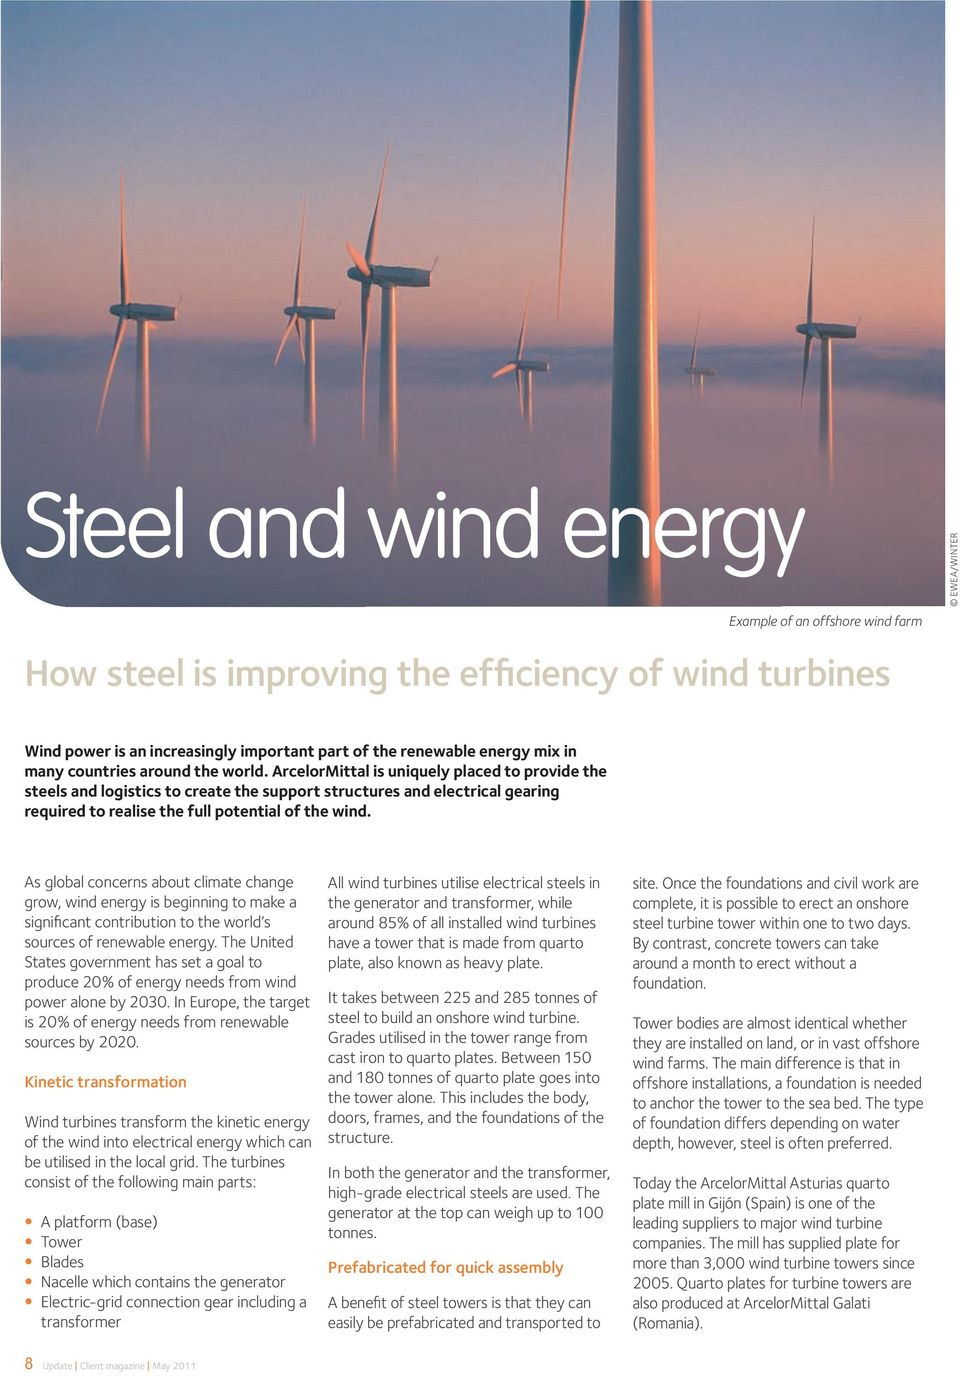 ArcelorMittal is uniquely placed to provide the steels and logistics to create the support structures and electrical gearing required to realise the full potential of the wind.